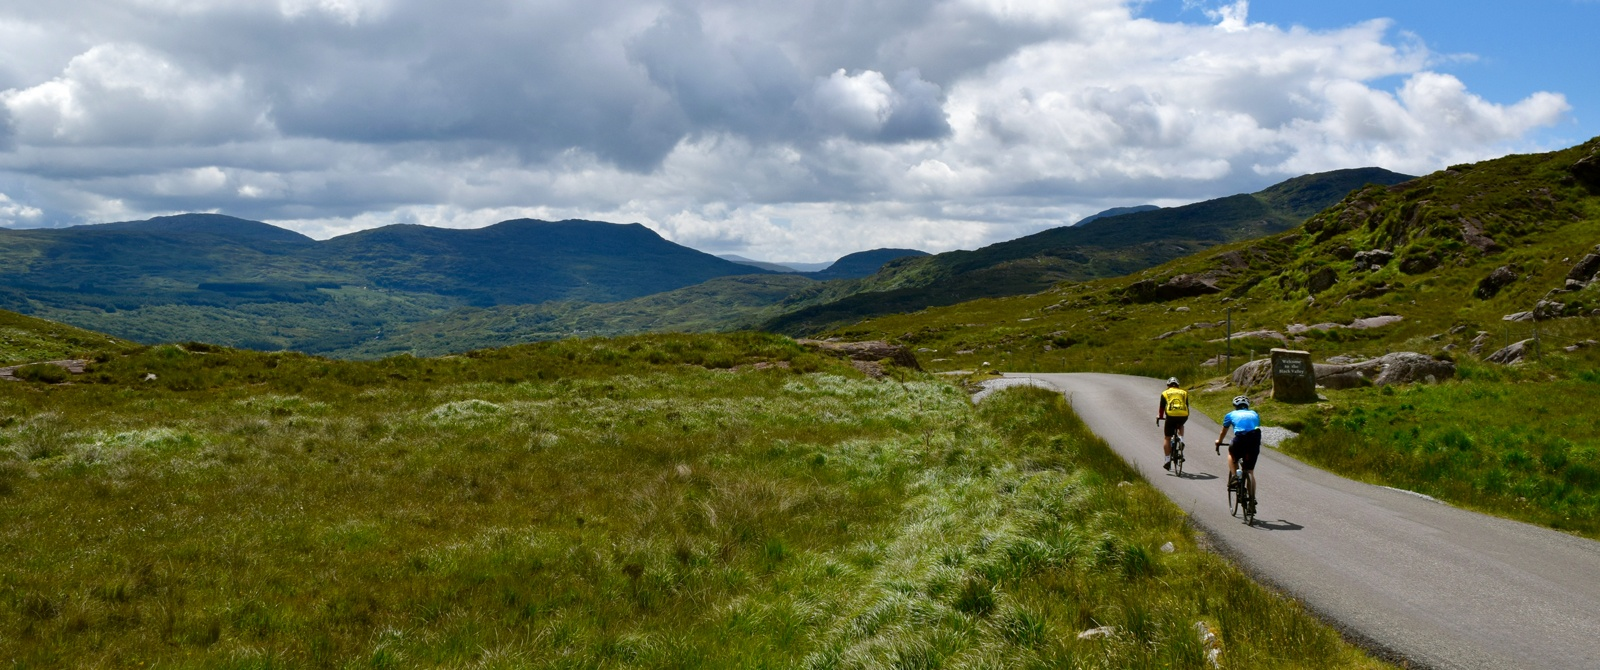 Bike Tours In Ireland With Trek Travel